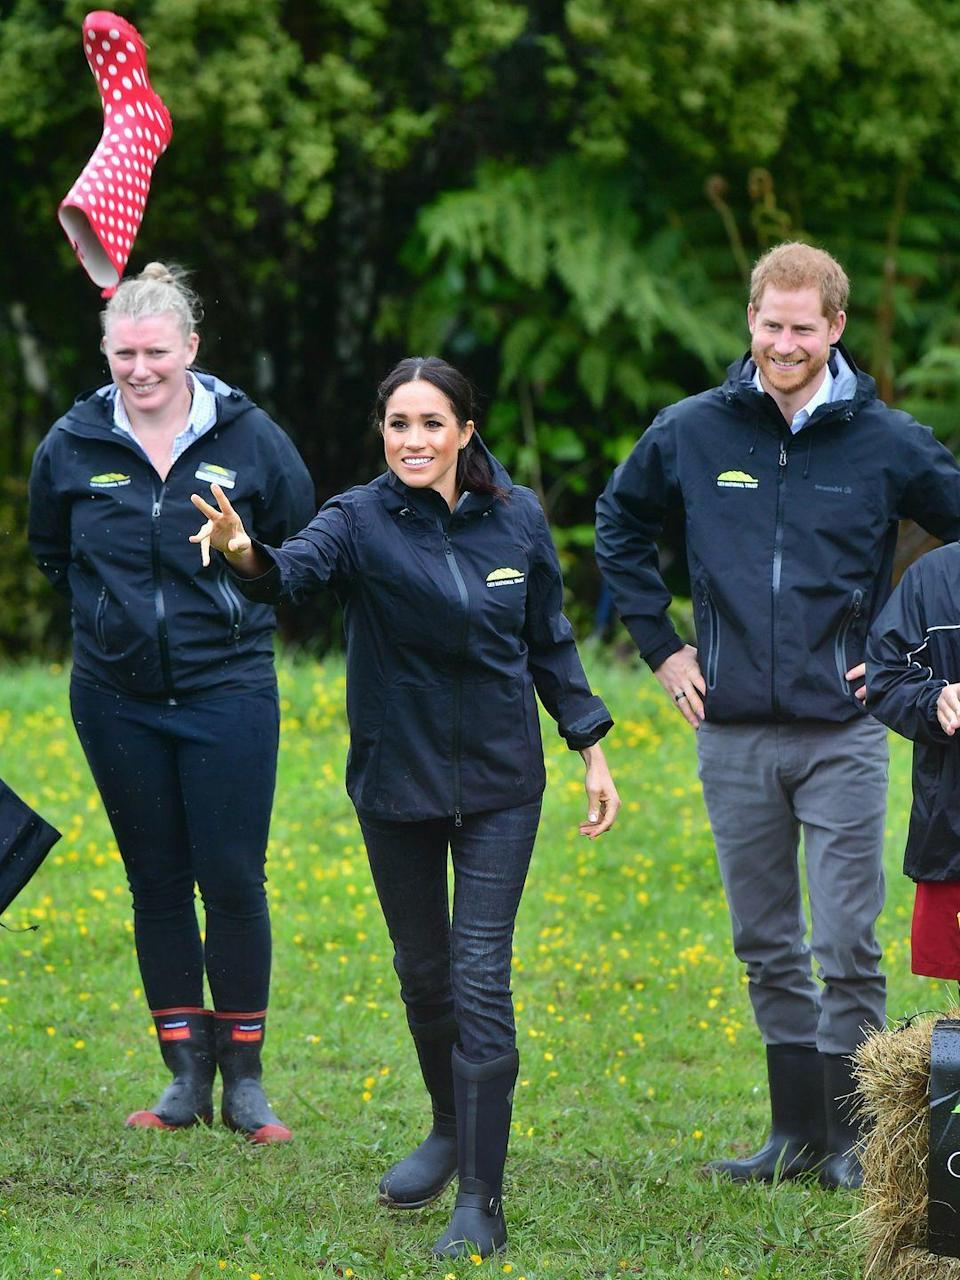 <p>Meghan throws the gumboot during the contest as Prince Harry looks on. </p>